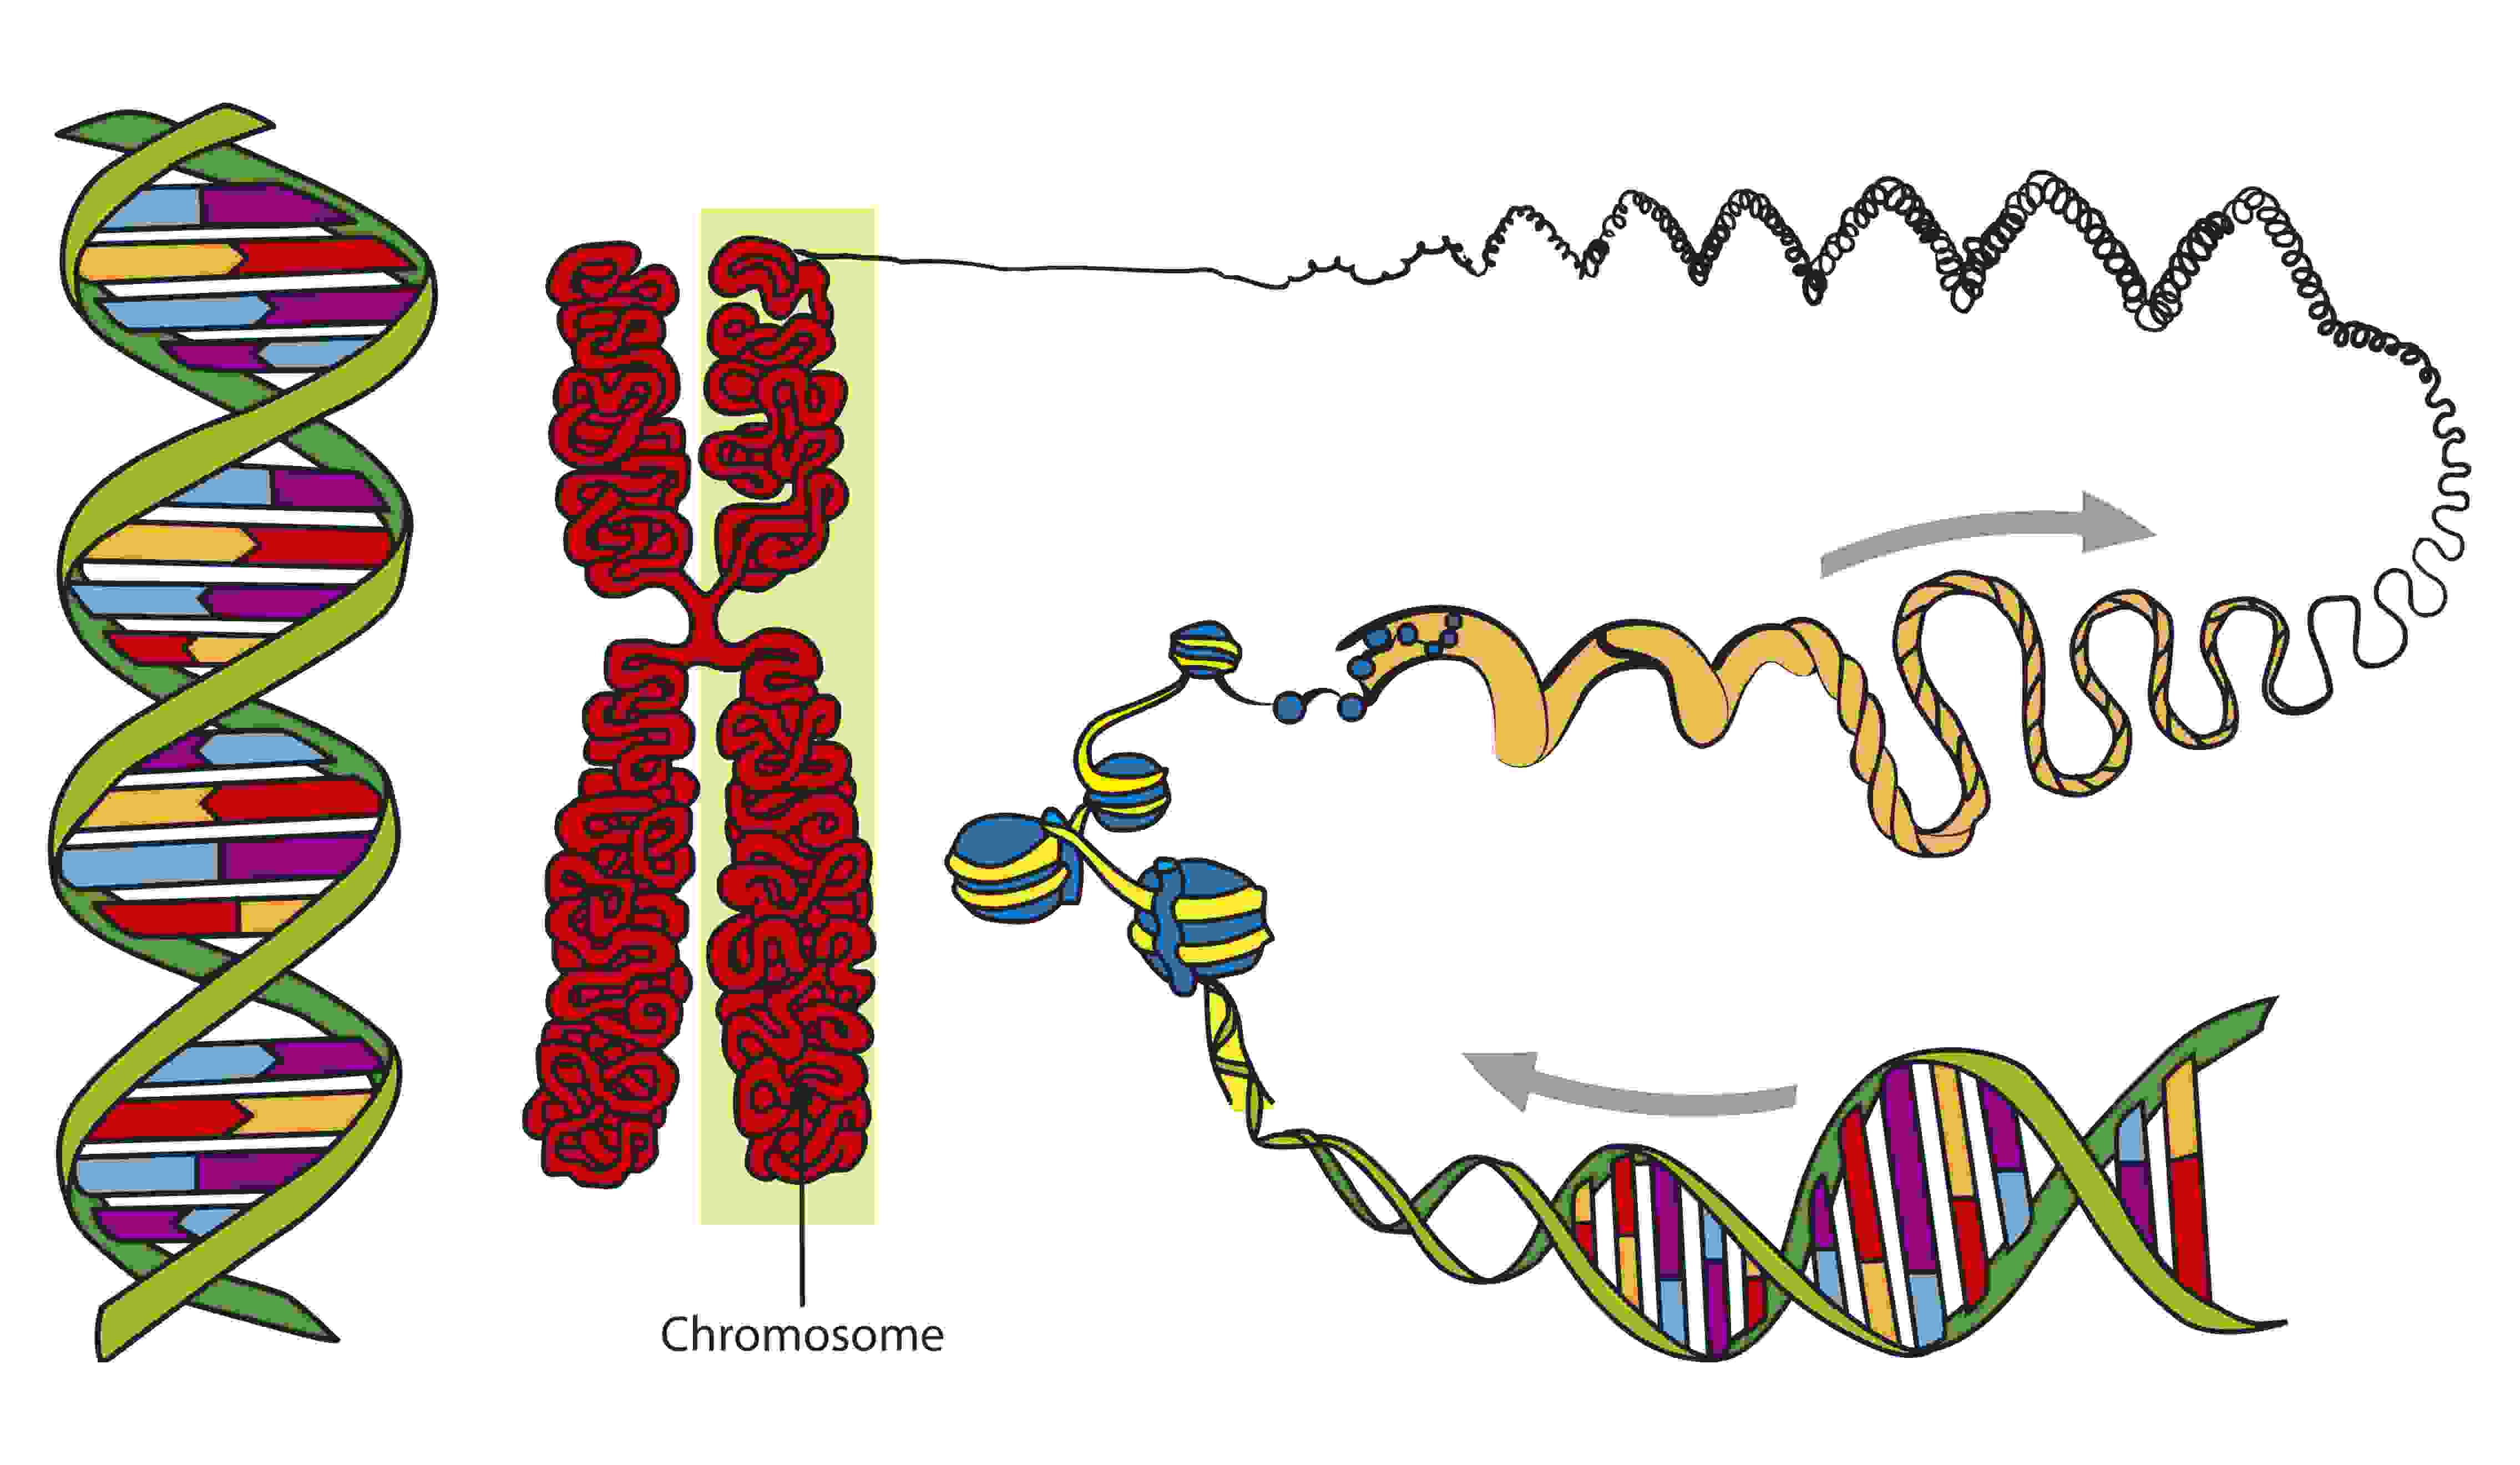 topic 1 biological molecules nucleic acids Nucleic acids the monomer units in nucleic acids are called nucleotides they consist of a pentose sugar (deoxyribose/ribose) a phosphate group and a nitrogenous base that is either a pyrimidine or a purine.